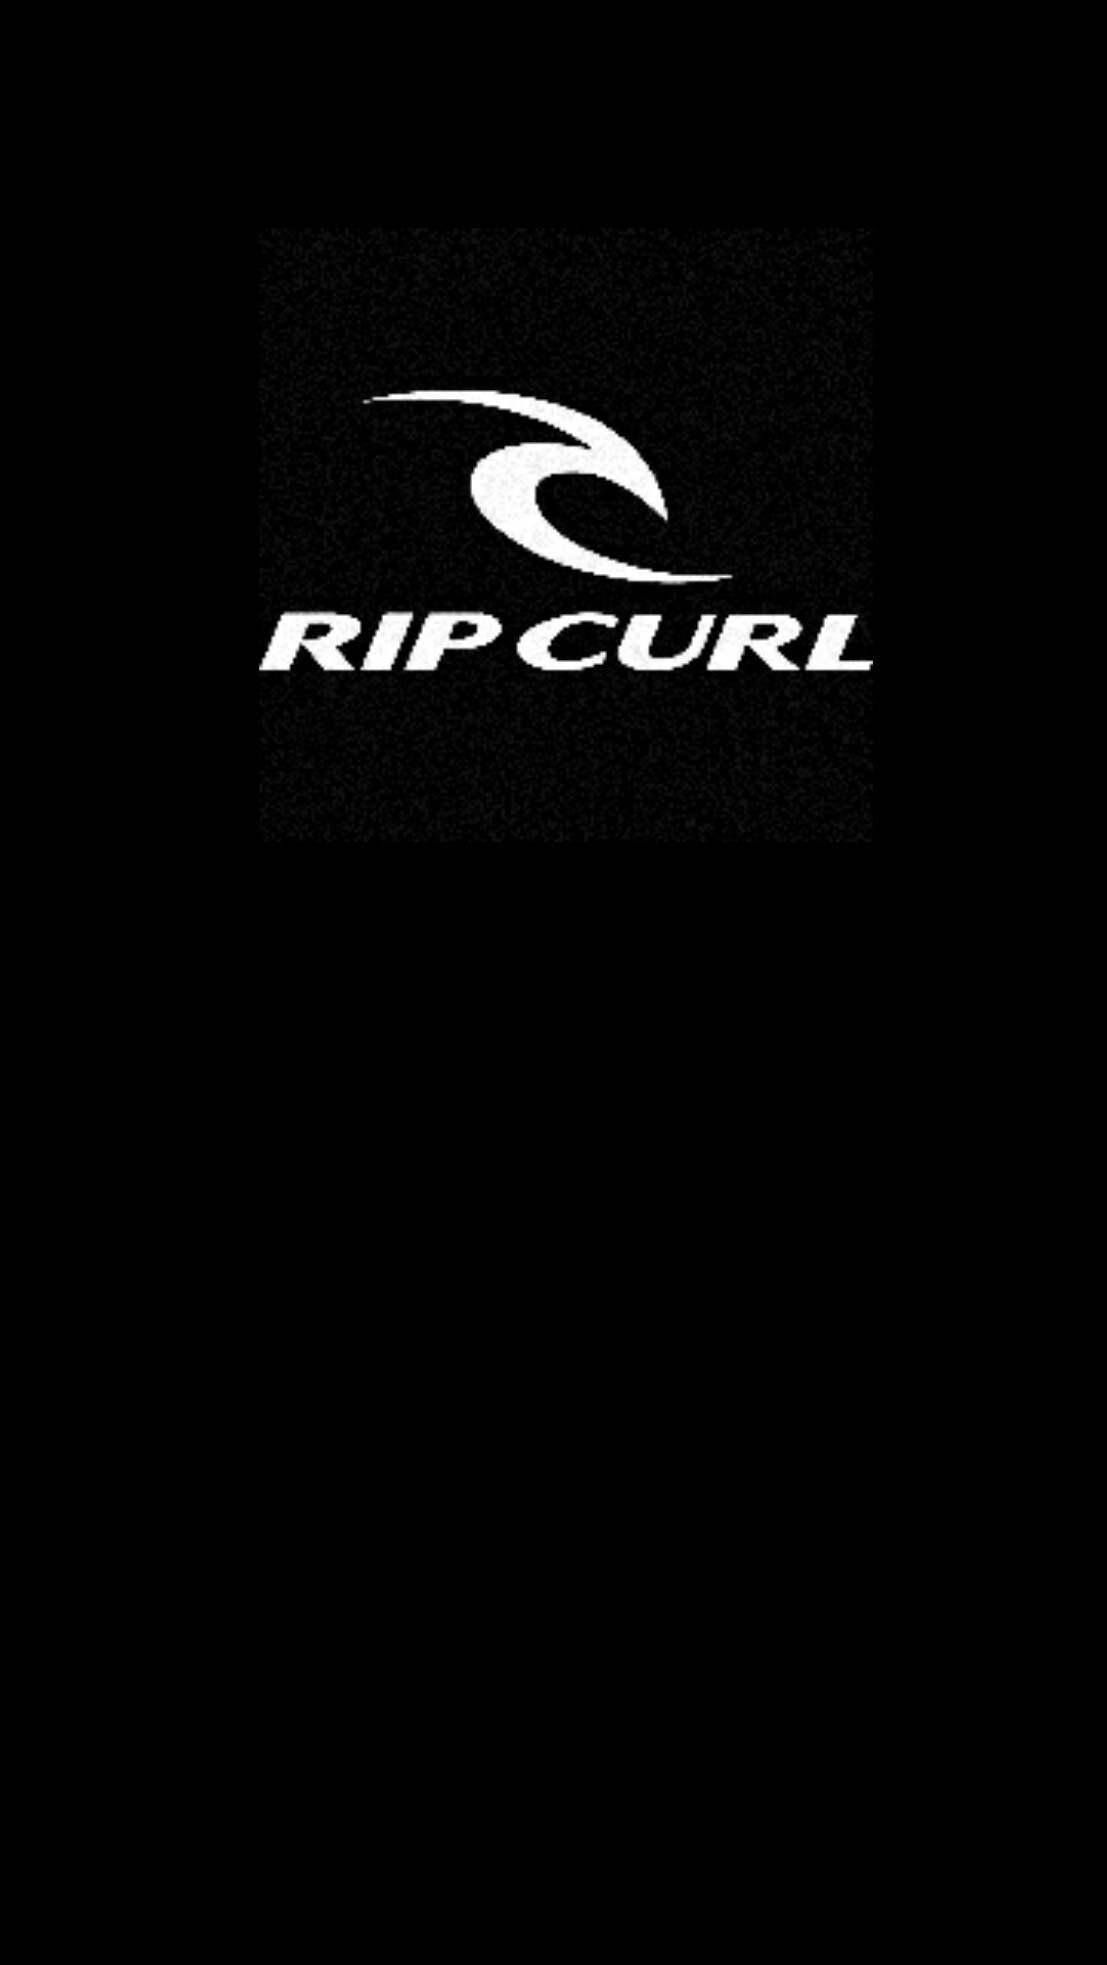 #ripcurl #black #wallpaper #iPhone #android